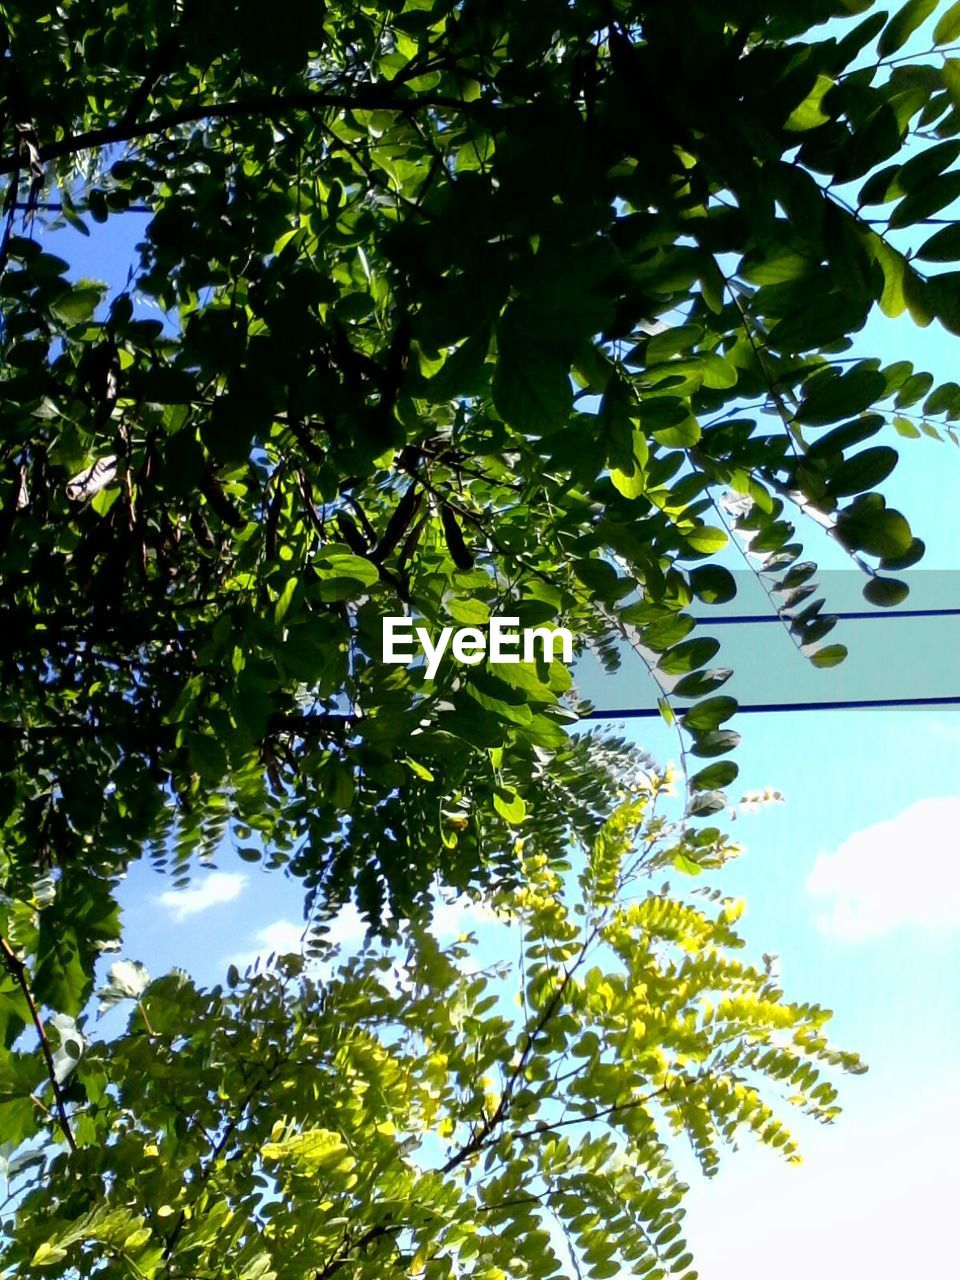 tree, growth, low angle view, nature, leaf, green, no people, beauty in nature, environment, day, branch, green color, outdoors, plant, sky, tranquility, clear sky, freshness